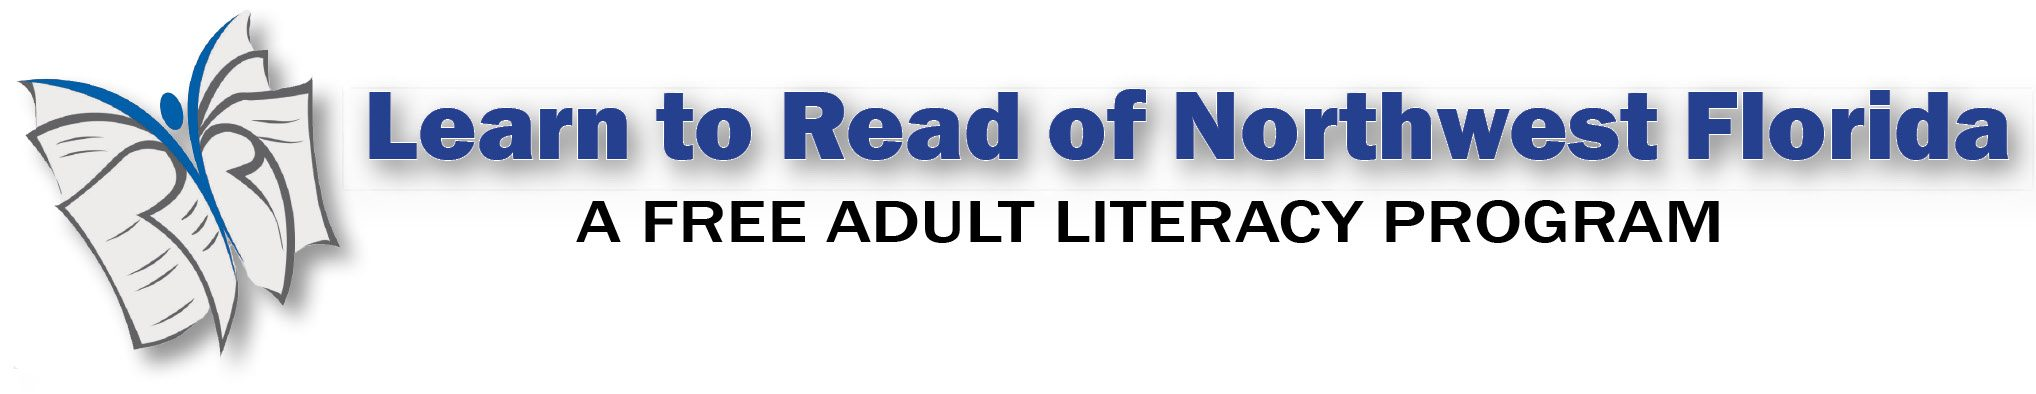 Learn to Read of Northwest Florida